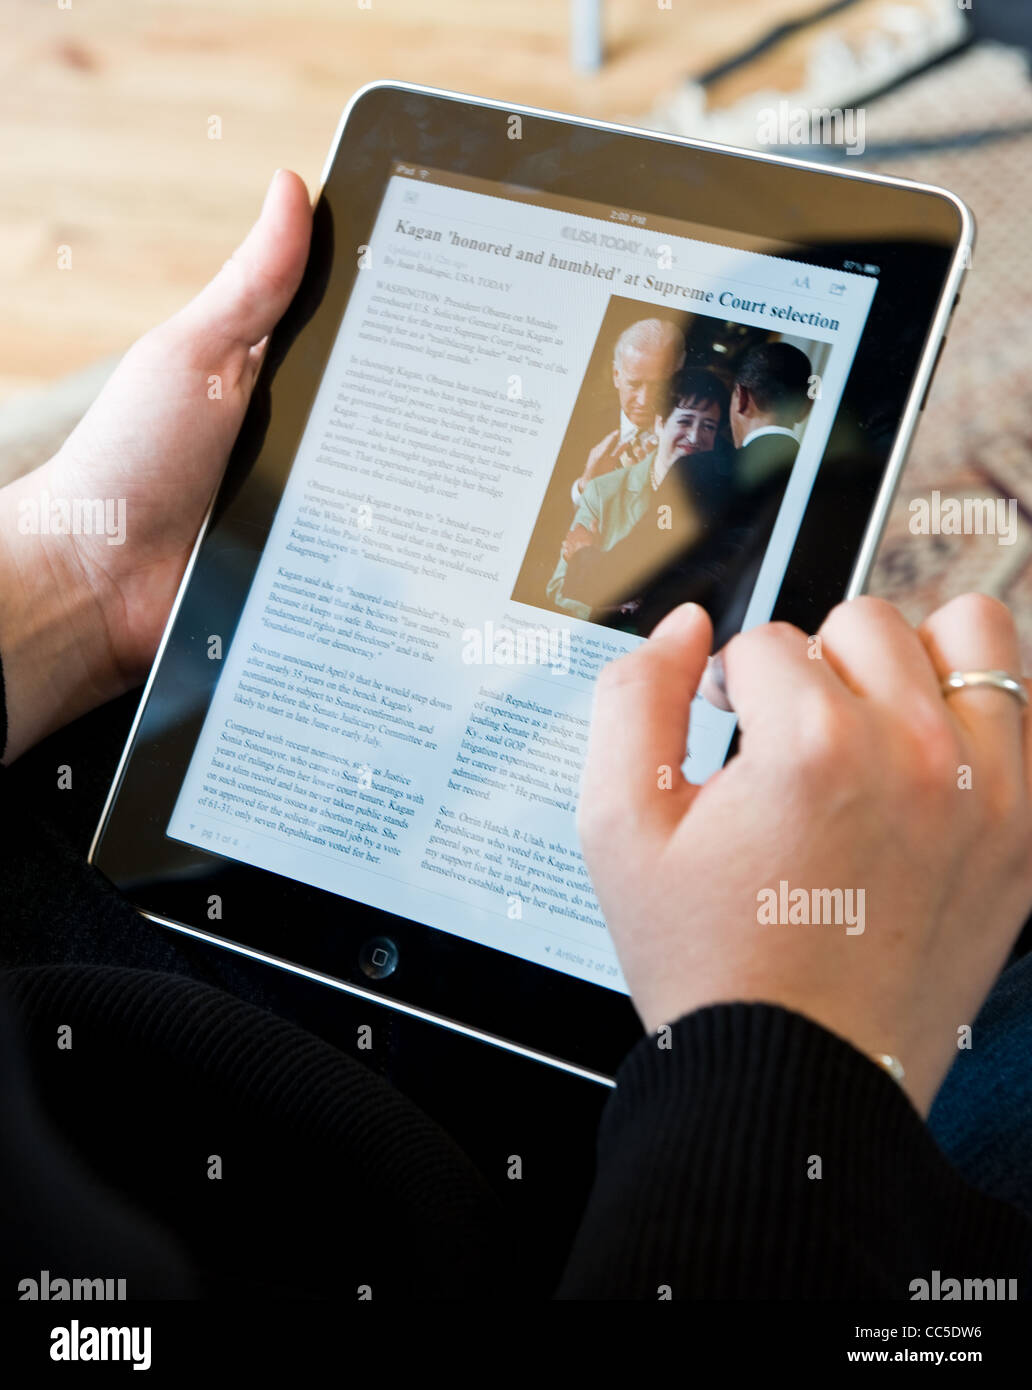 Caucasian woman uses Apple iPad to read USA Today news article - Stock Image